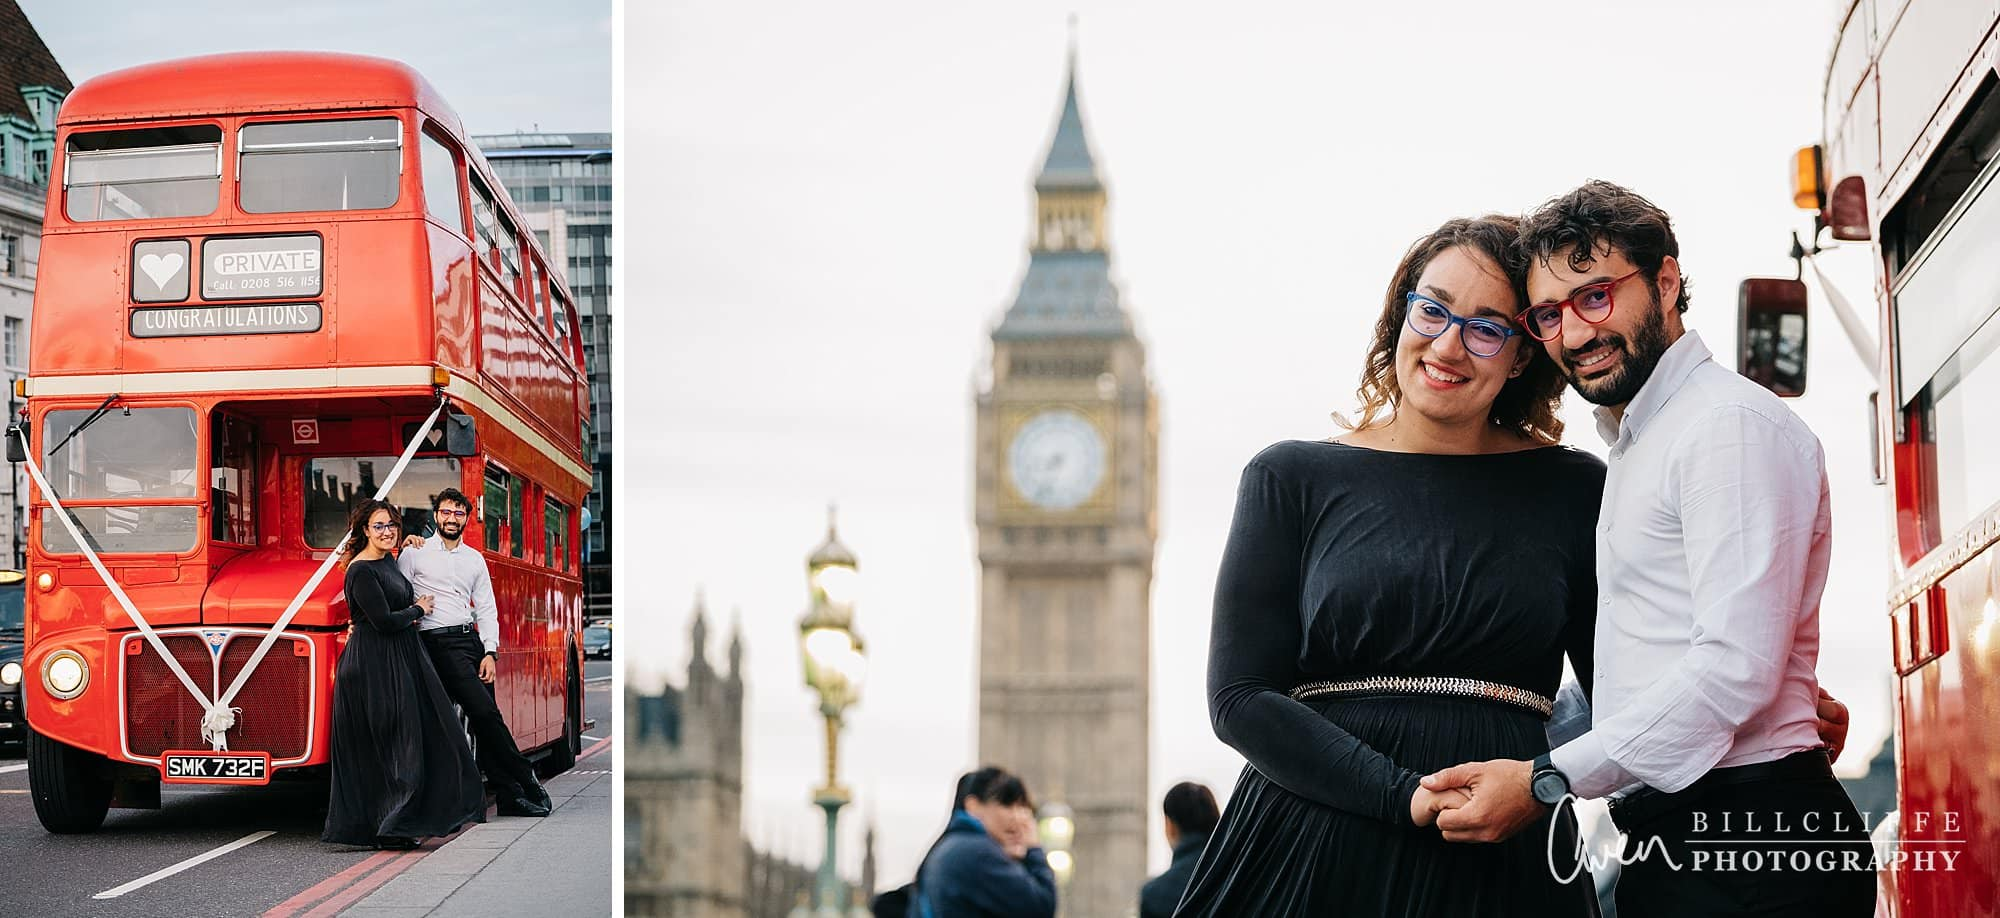 london engagement proposal photographer routemaster gr 029 - A Romantic Marriage Proposal on a London Routemaster Bus